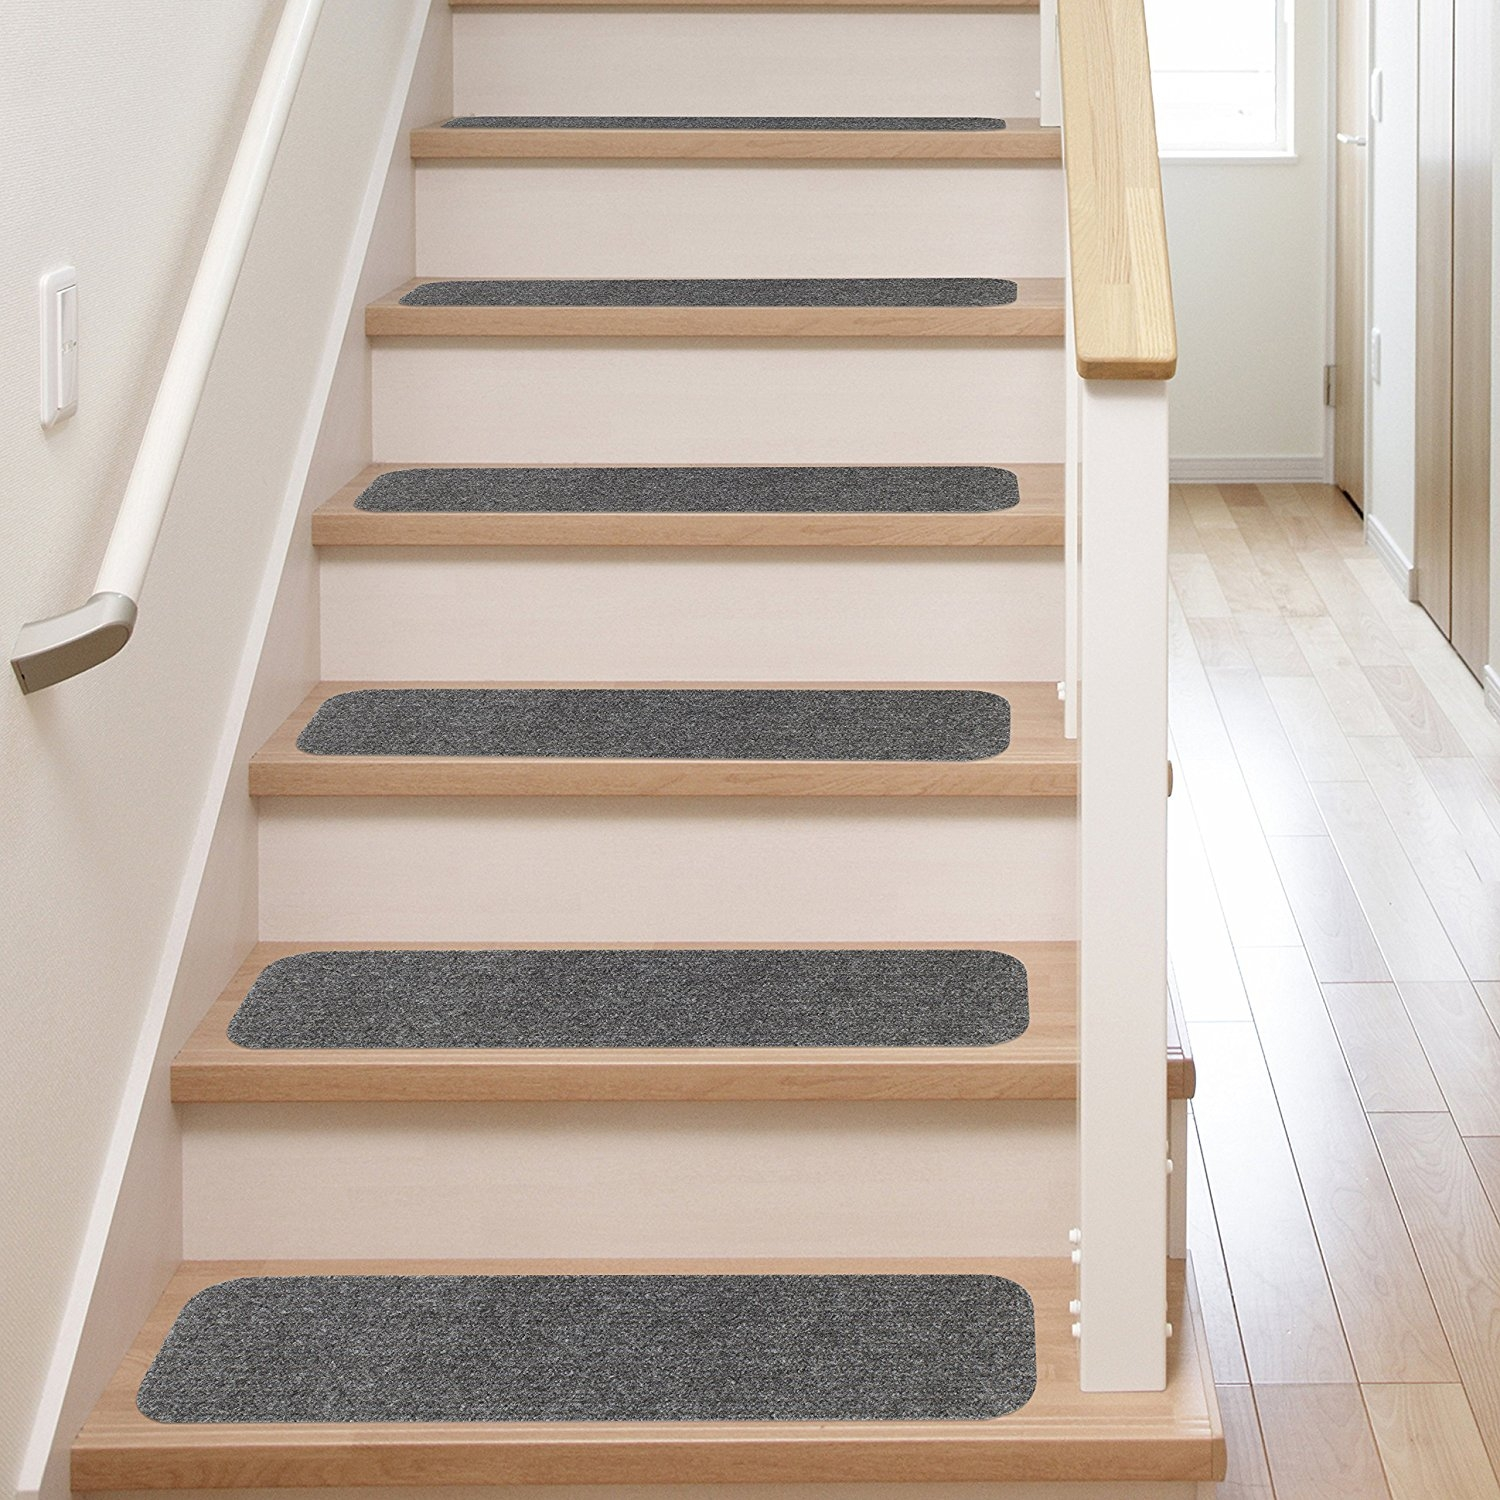 13 Stair Treads Non Slip Carpet Pads Easy Tape Installation Regarding Rubber Backed Stair Tread Rugs (Image 1 of 15)